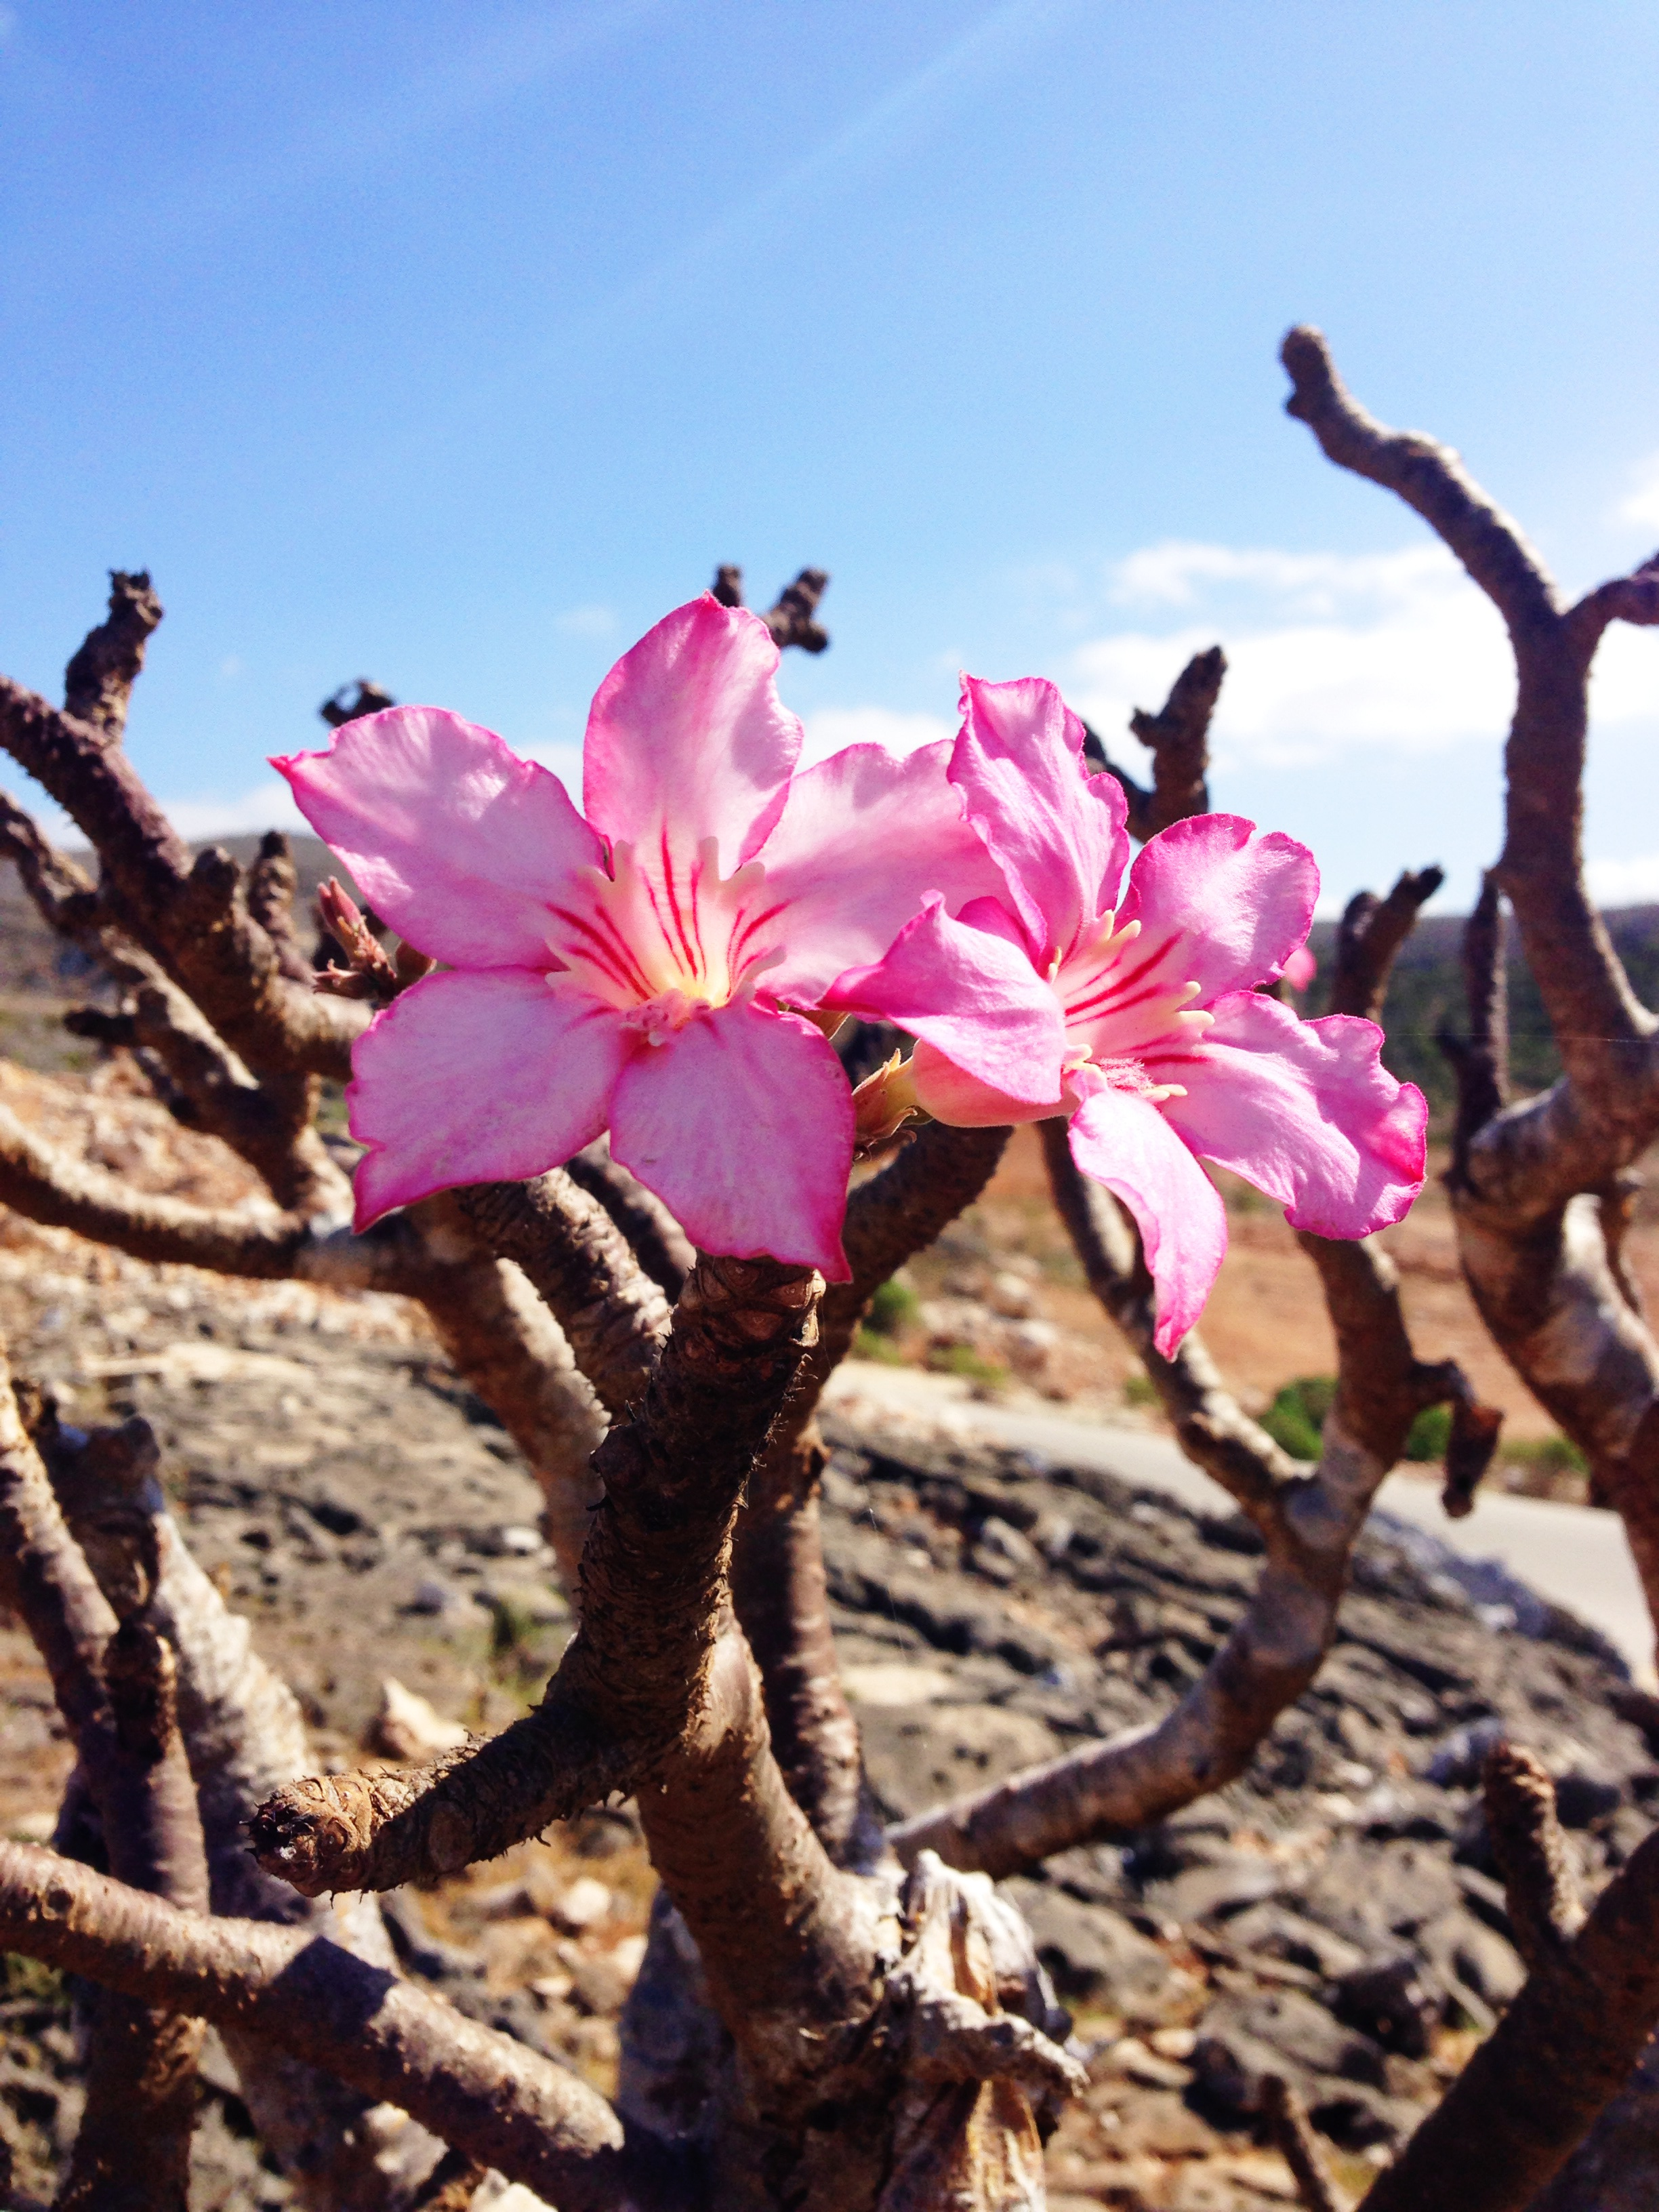 IMG_3537-bottle tree flower Adenium.JPG